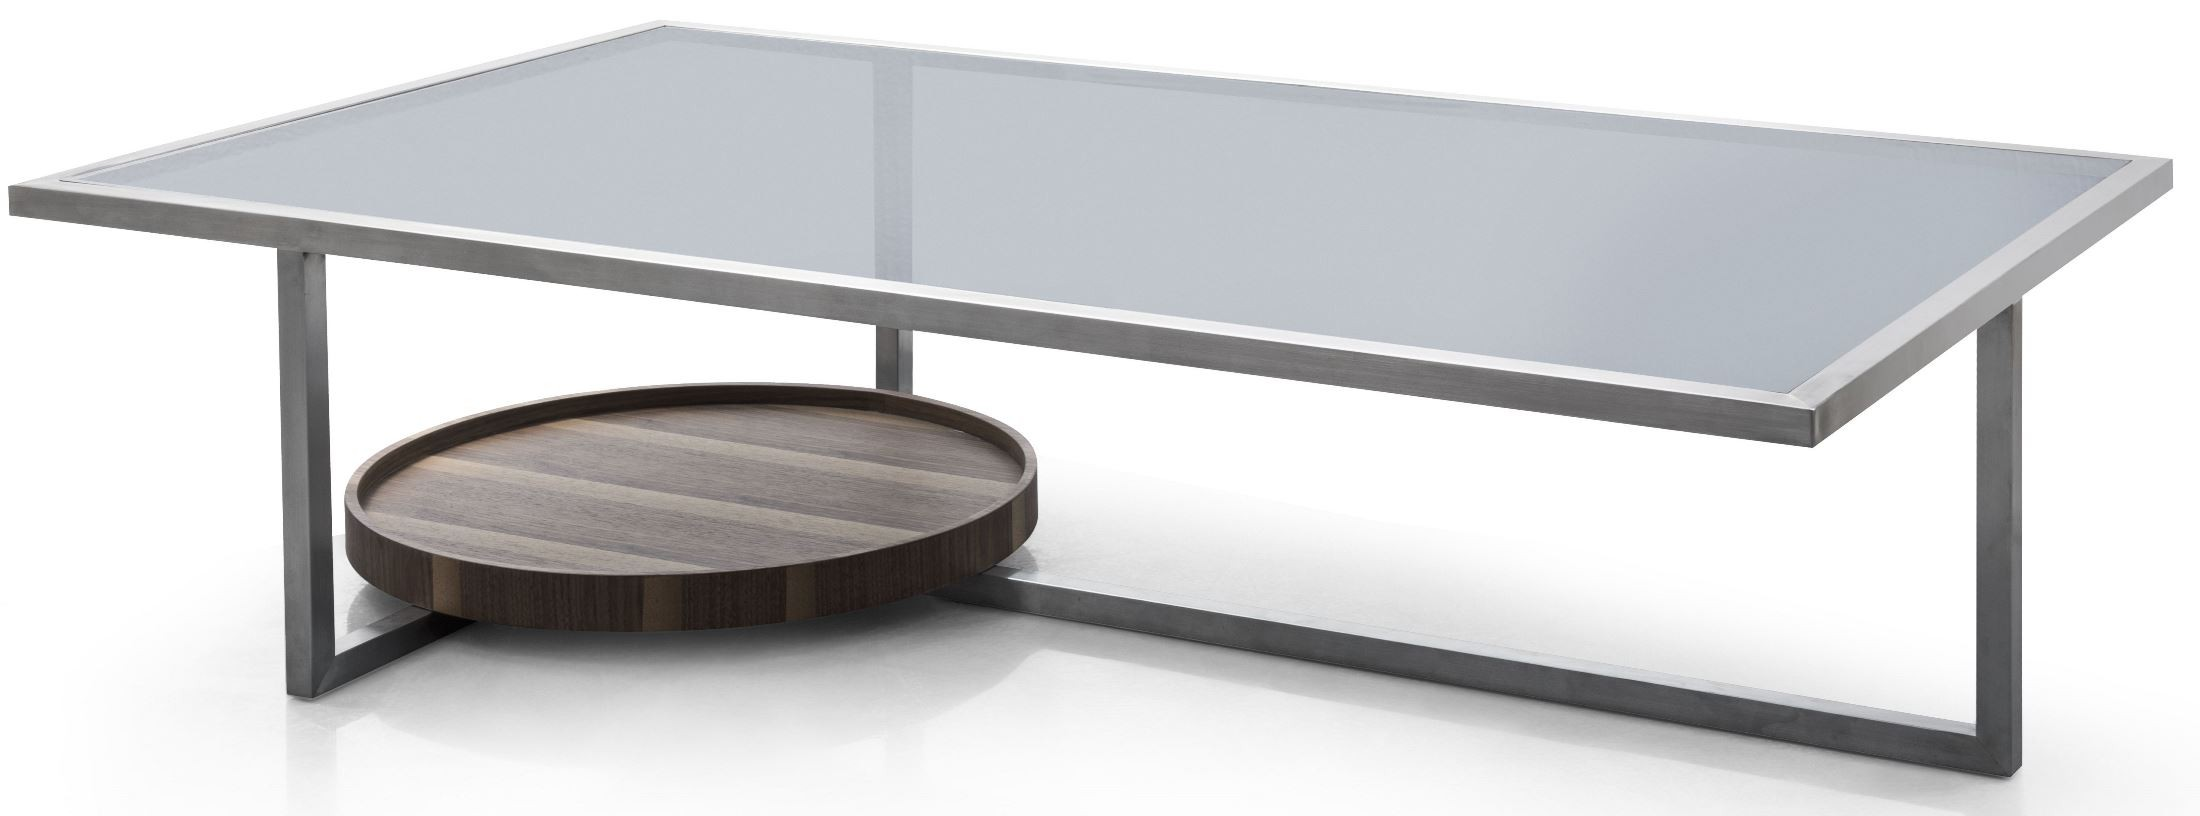 Sabrina Stainless Steel Coffee Table From Bellini Modern Living Coleman Furniture